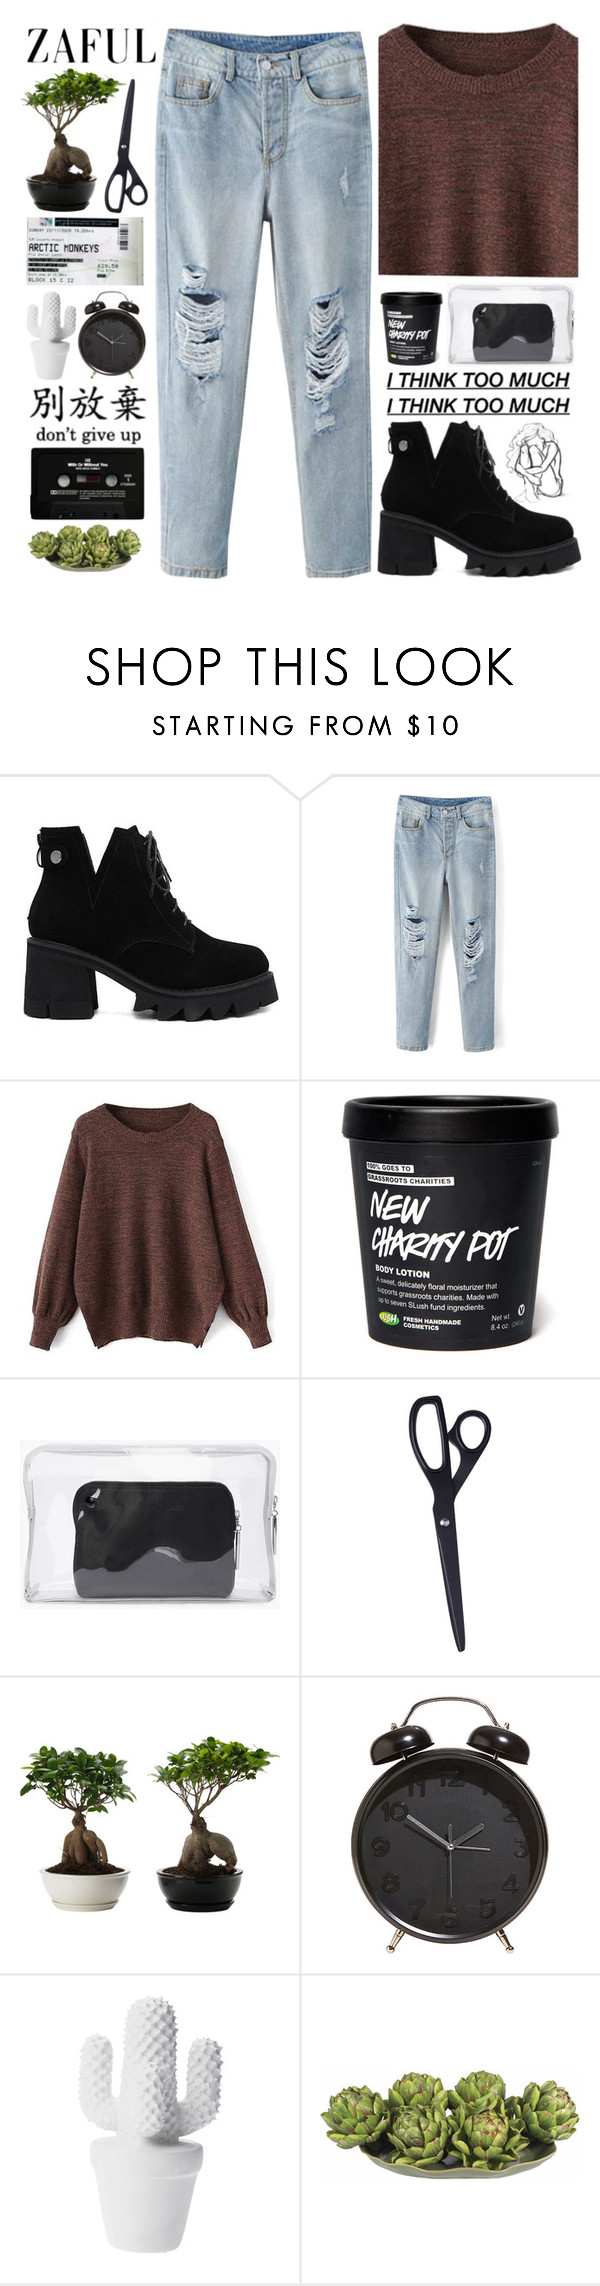 """""""#511 Beautiful day"""" by mia5056 ❤ liked on Polyvore featuring 3.1 Phillip Lim, HAY, CASSETTE and Nearly Natural"""